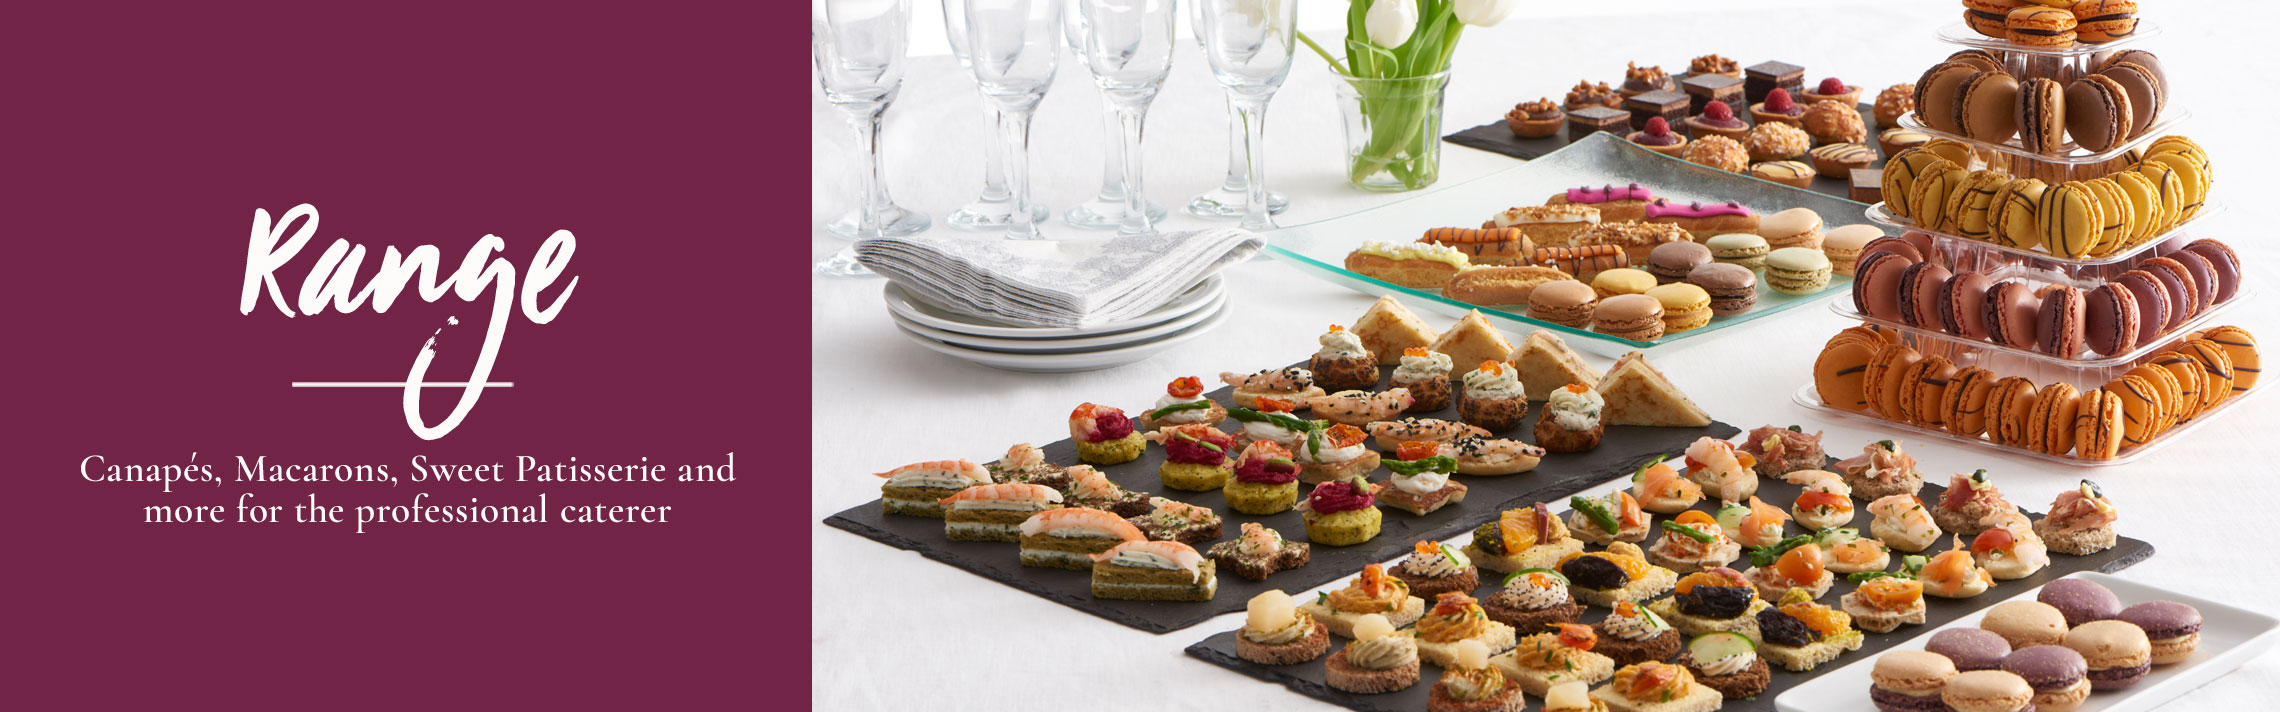 Buffet Food Supplier - Tipiak Foodservice - Canapes, Macarons, Sweet Patisserie